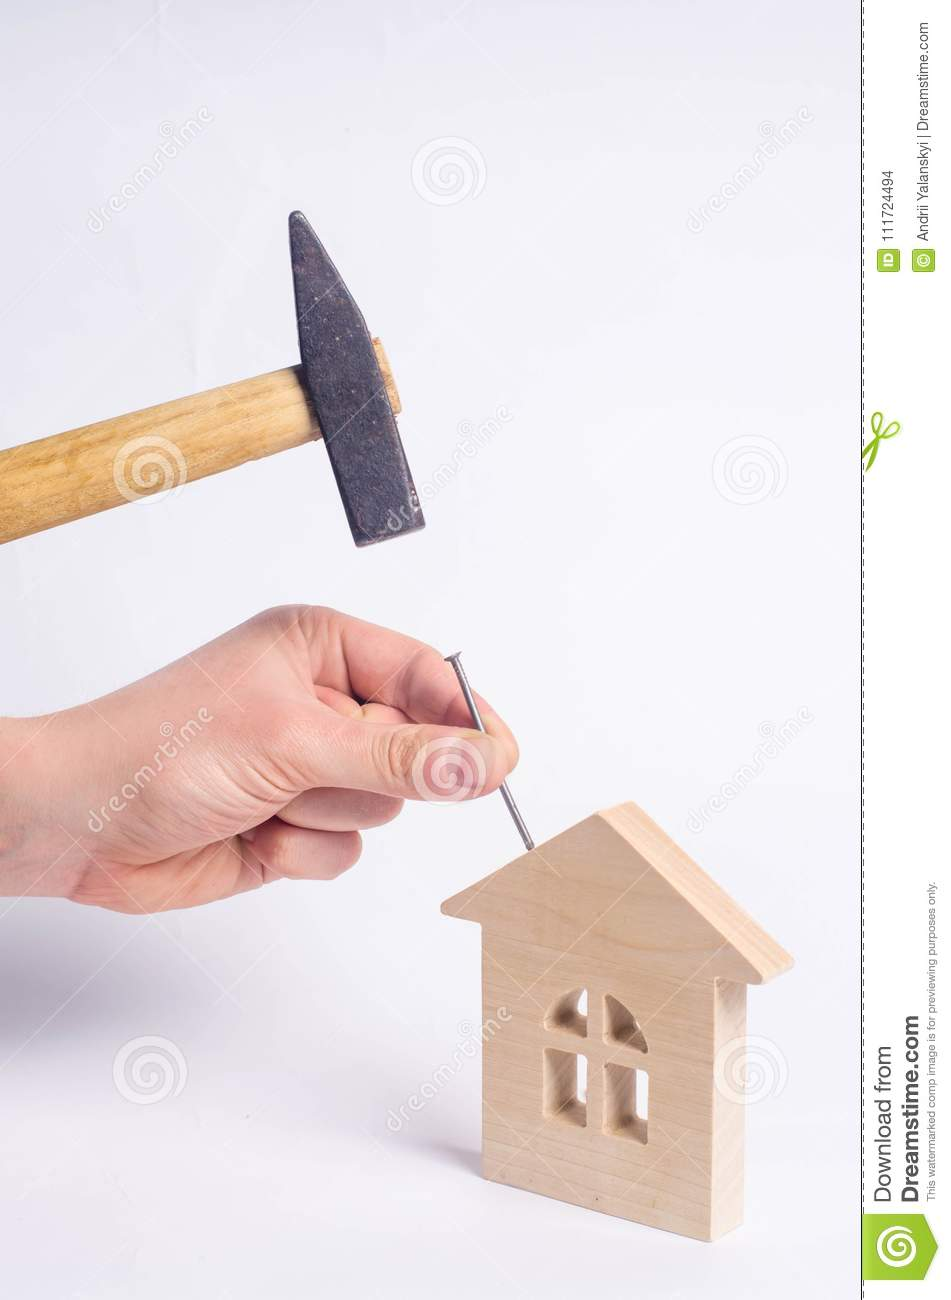 The House Of Hammer man hammers a nail with a hammer in a miniature wooden house